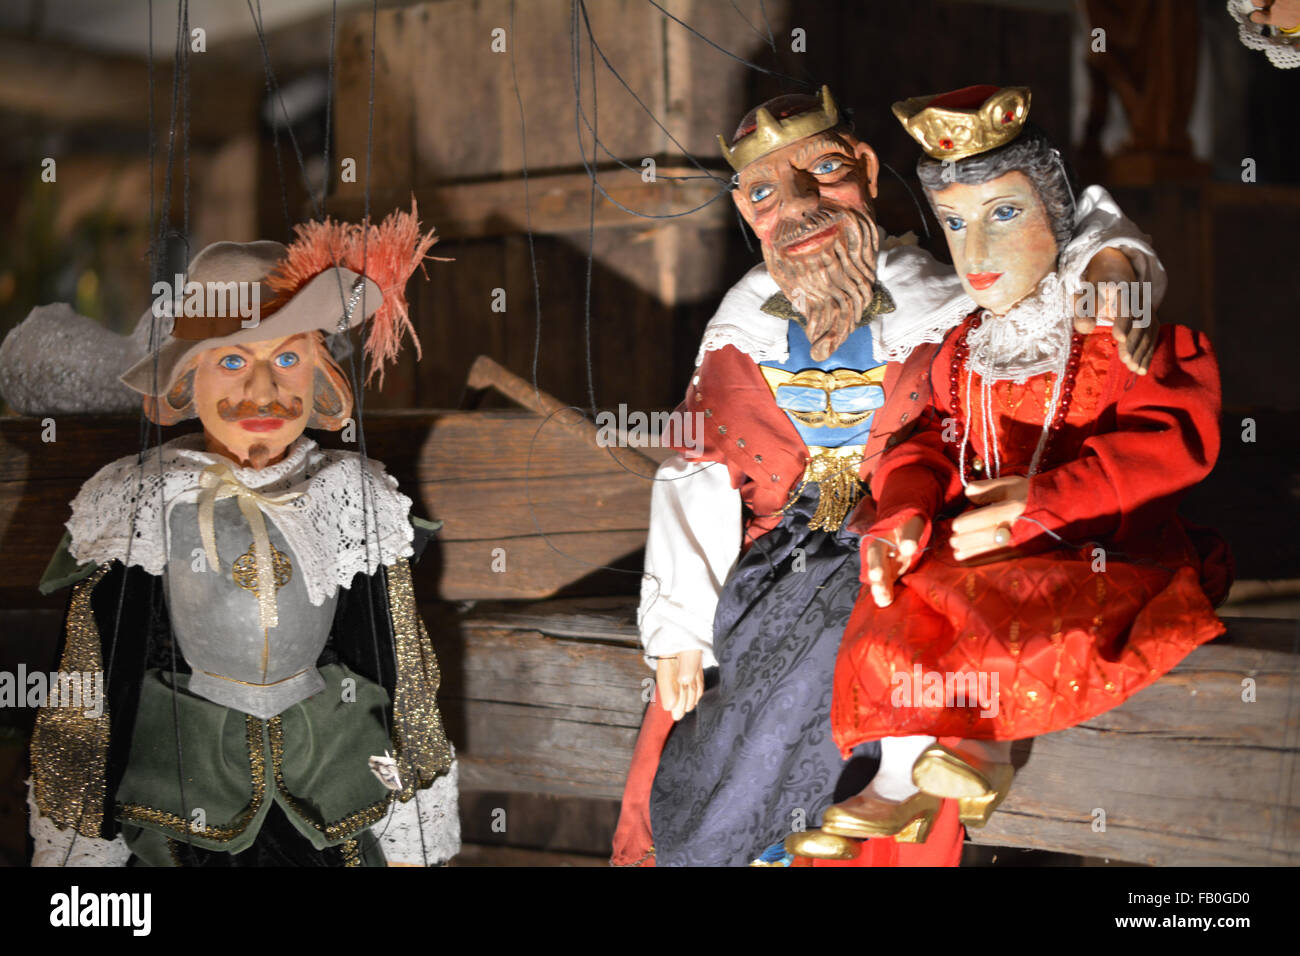 Christmas stringed wooden puppets of Royalty at the Christmas markets in Prague - Stock Image